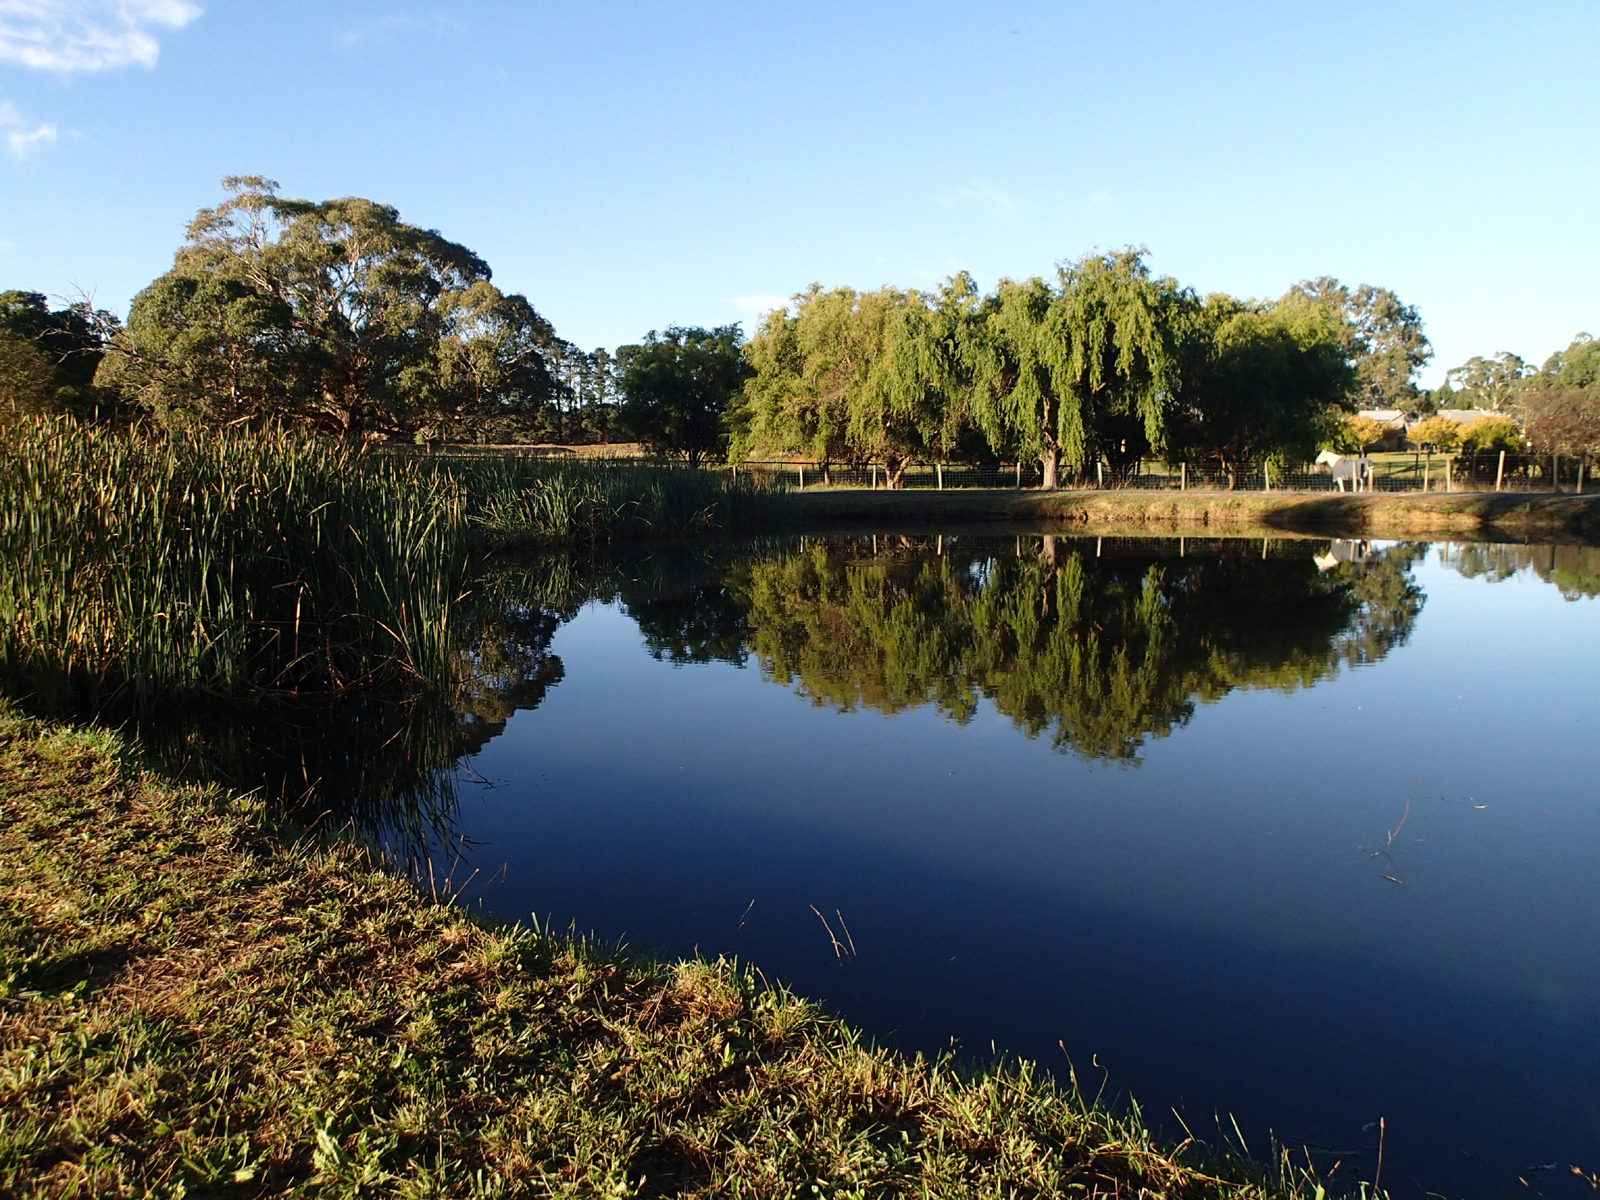 Pond in bright sunshine with reeds, trees and a horse reflected in still water